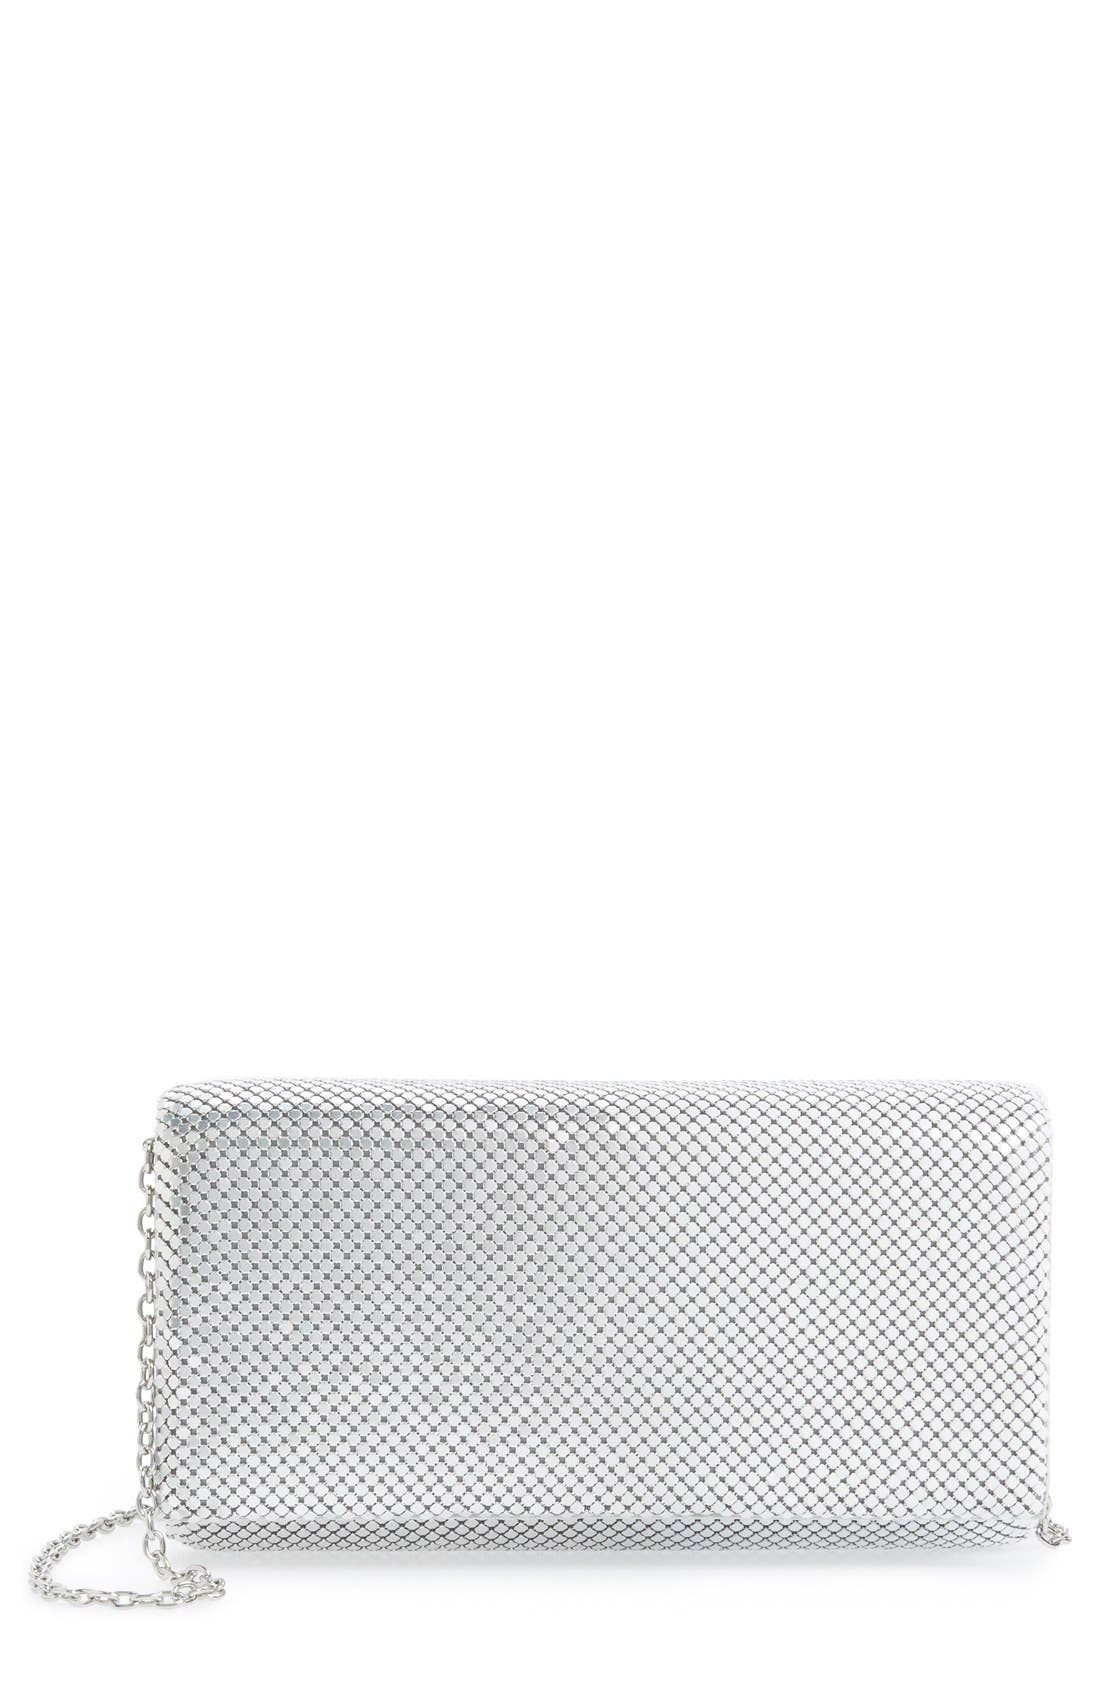 Alternate Image 1 Selected - Jessica McClintock Ombré Mesh Clutch